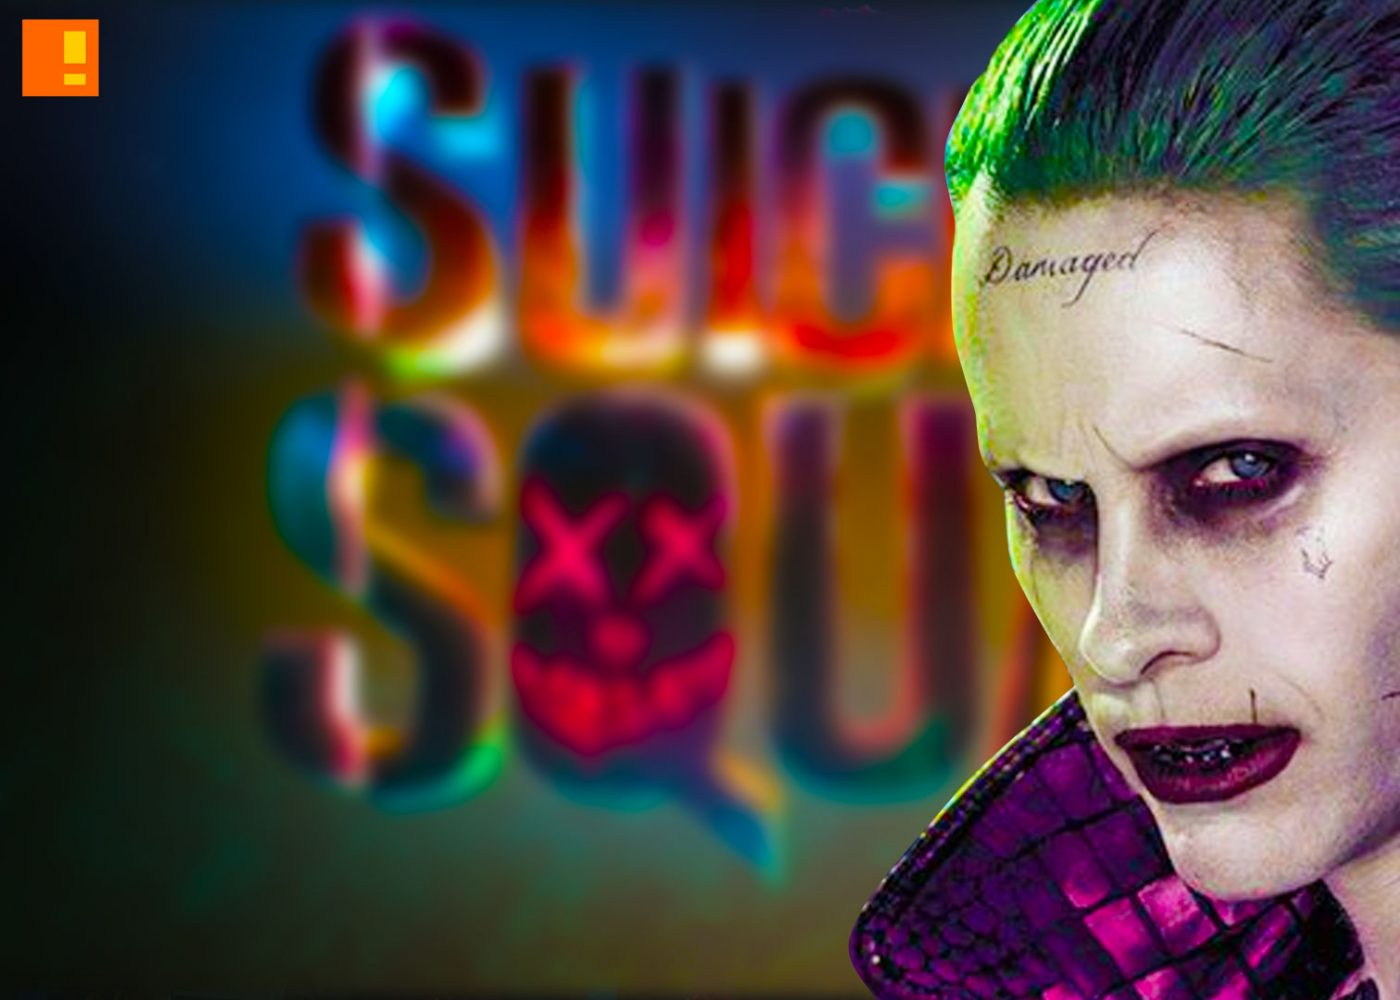 suicide squad, joker, banner, poster, entertainment on tap, the action pixel,